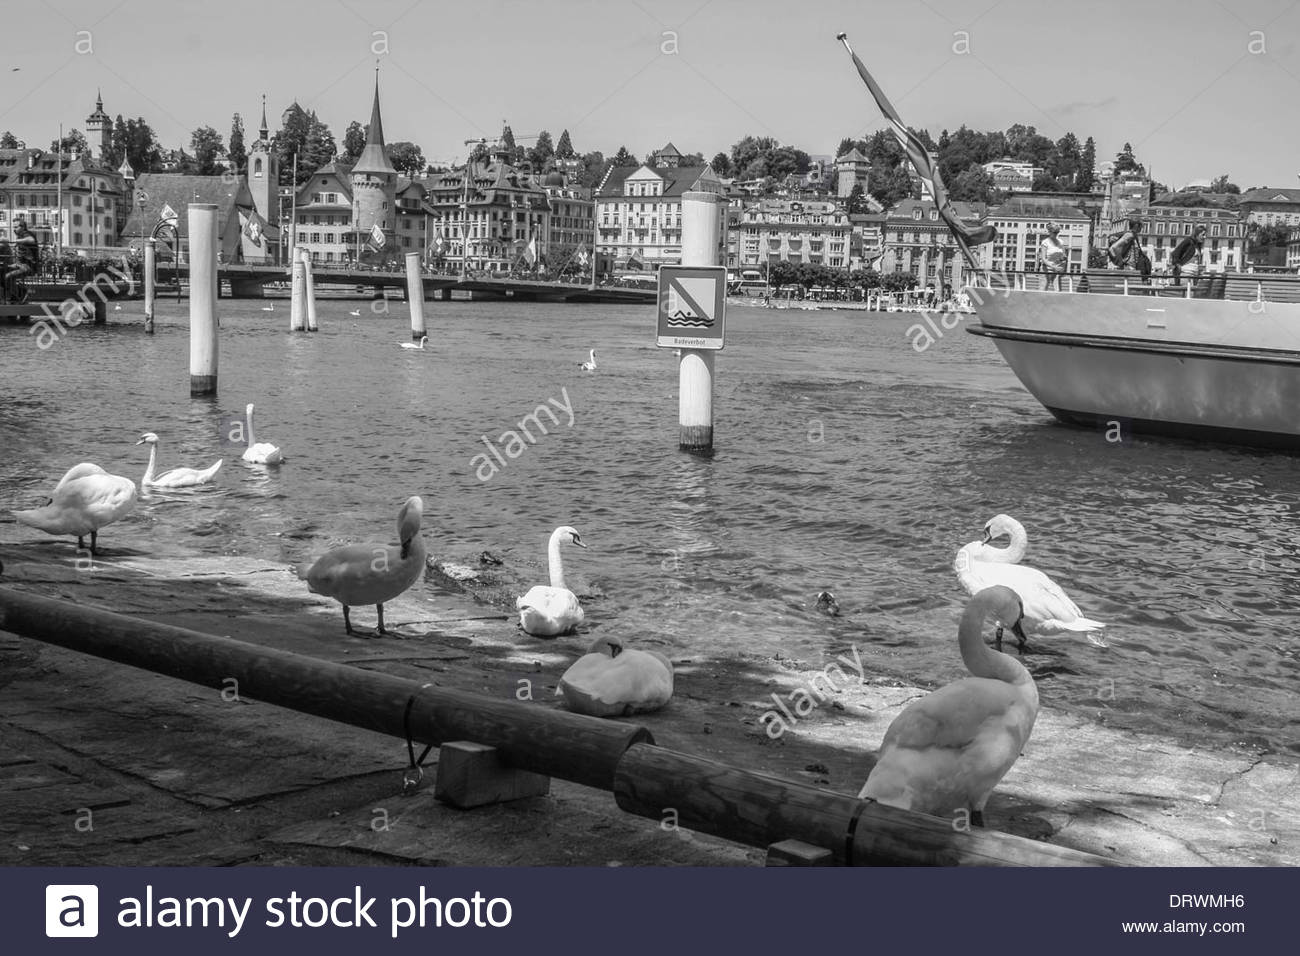 Swans along Limmat river waterfront, Zurich. - Stock Image